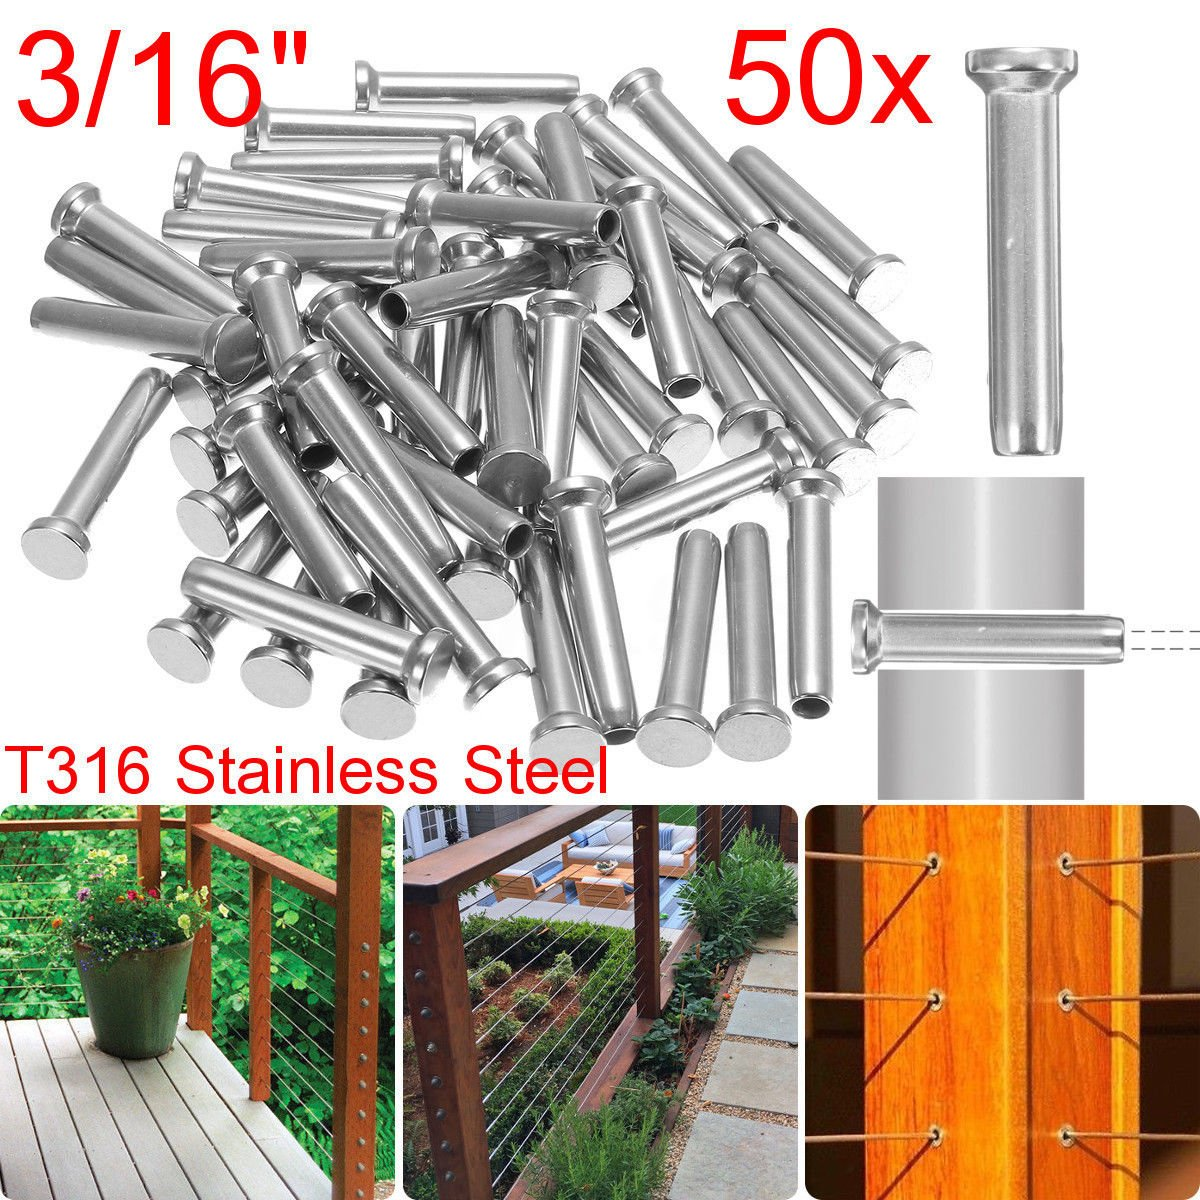 NEW US 50X T316 Stainless Steel Stud Swage Thread Tensioner for 3/16'' Cable Railing